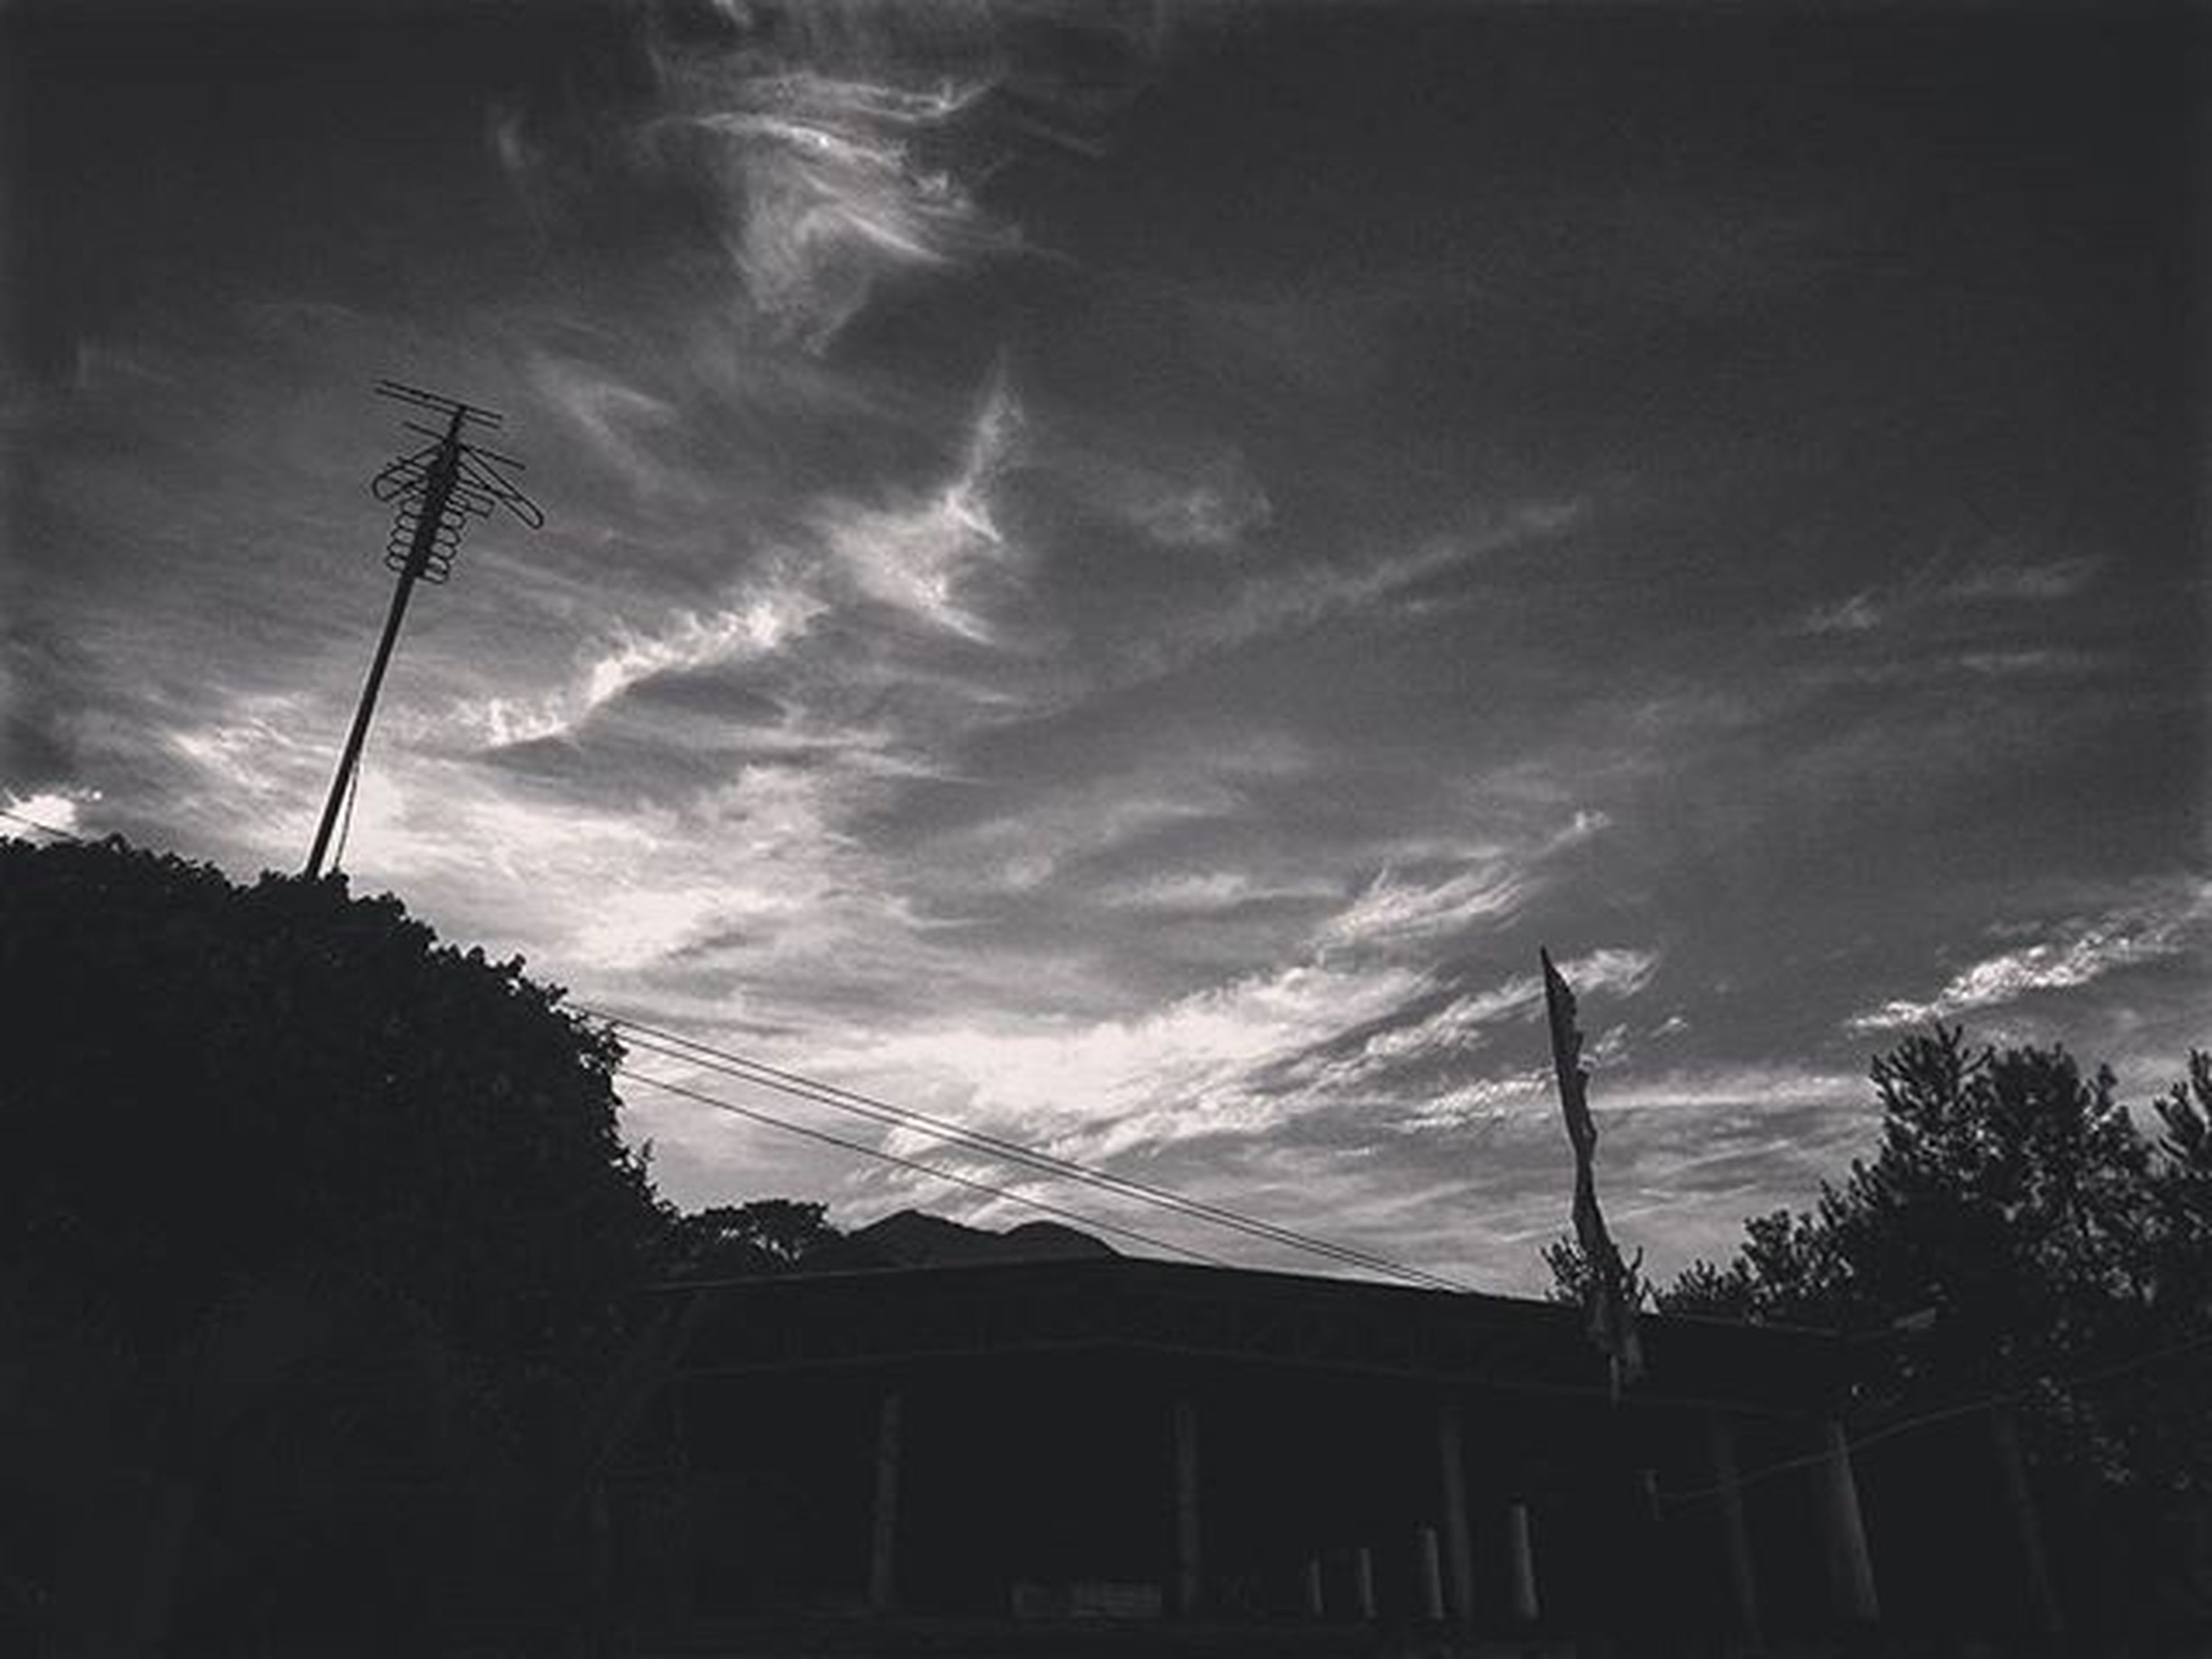 sky, low angle view, power line, electricity pylon, cloud - sky, electricity, cable, built structure, cloudy, power supply, building exterior, architecture, connection, silhouette, house, fuel and power generation, tree, cloud, technology, nature